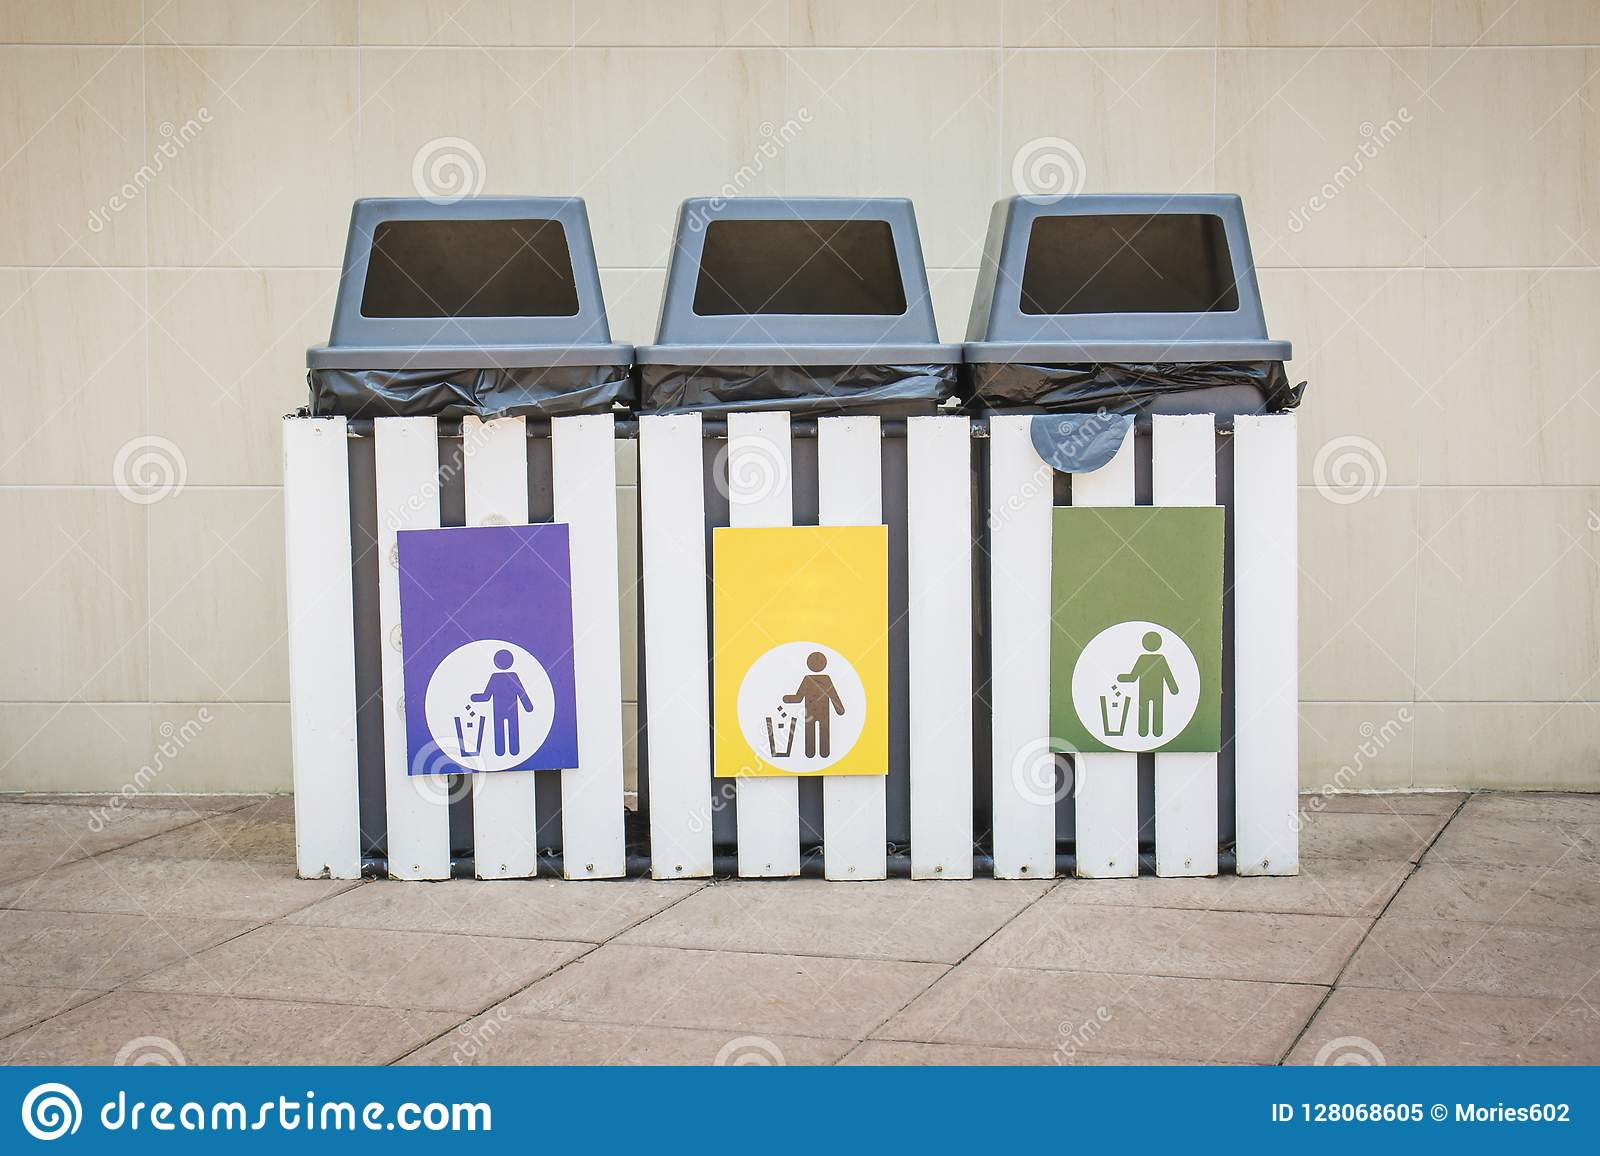 Three Bins With 3 Color Labels Stock Image - Image of outdoor, lawn